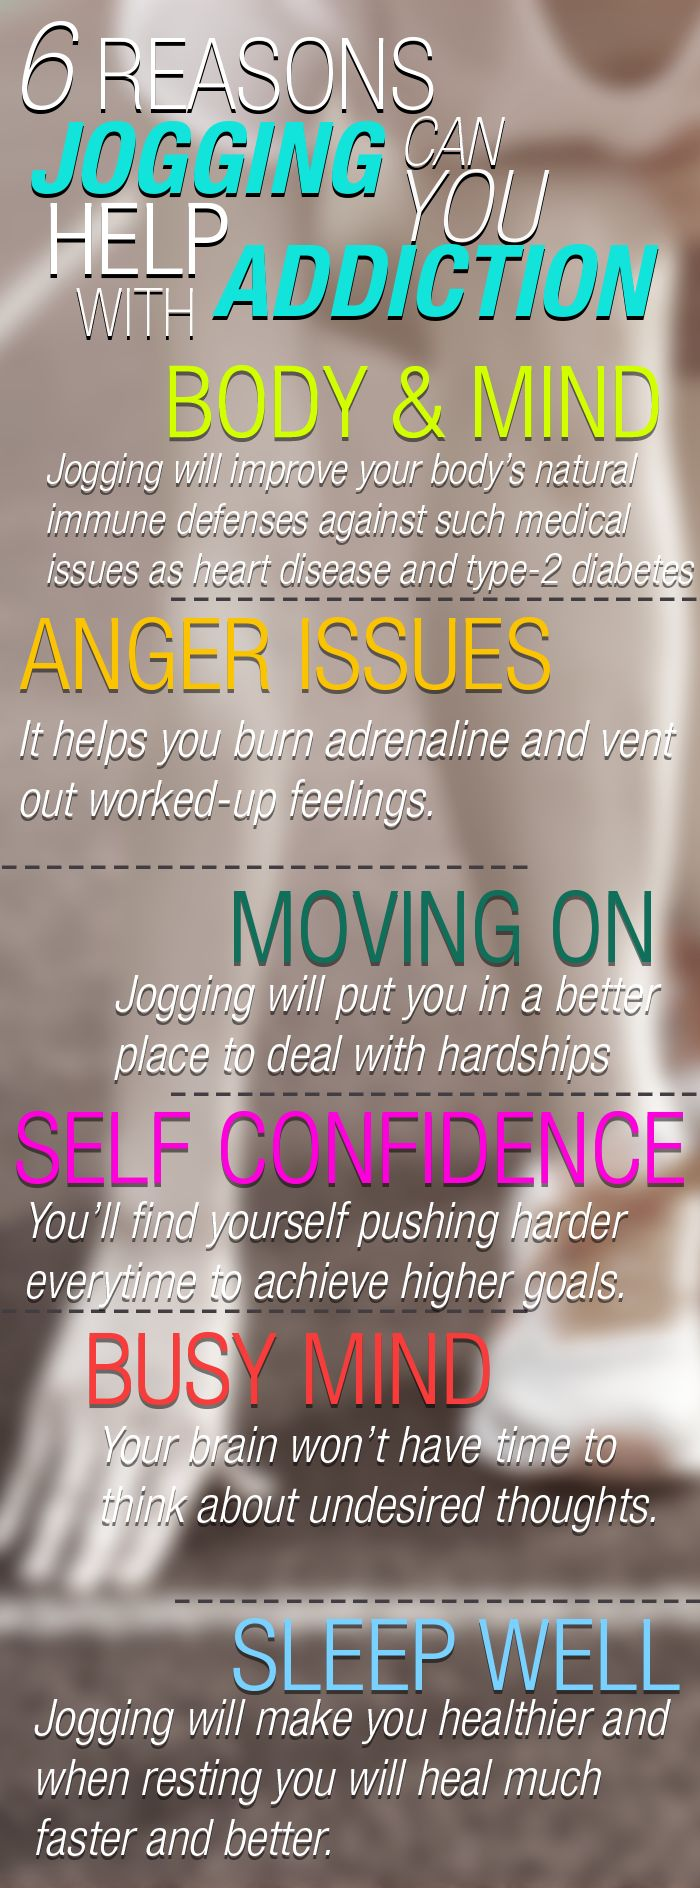 6 Reasons Jogging Can Help You With Addiction